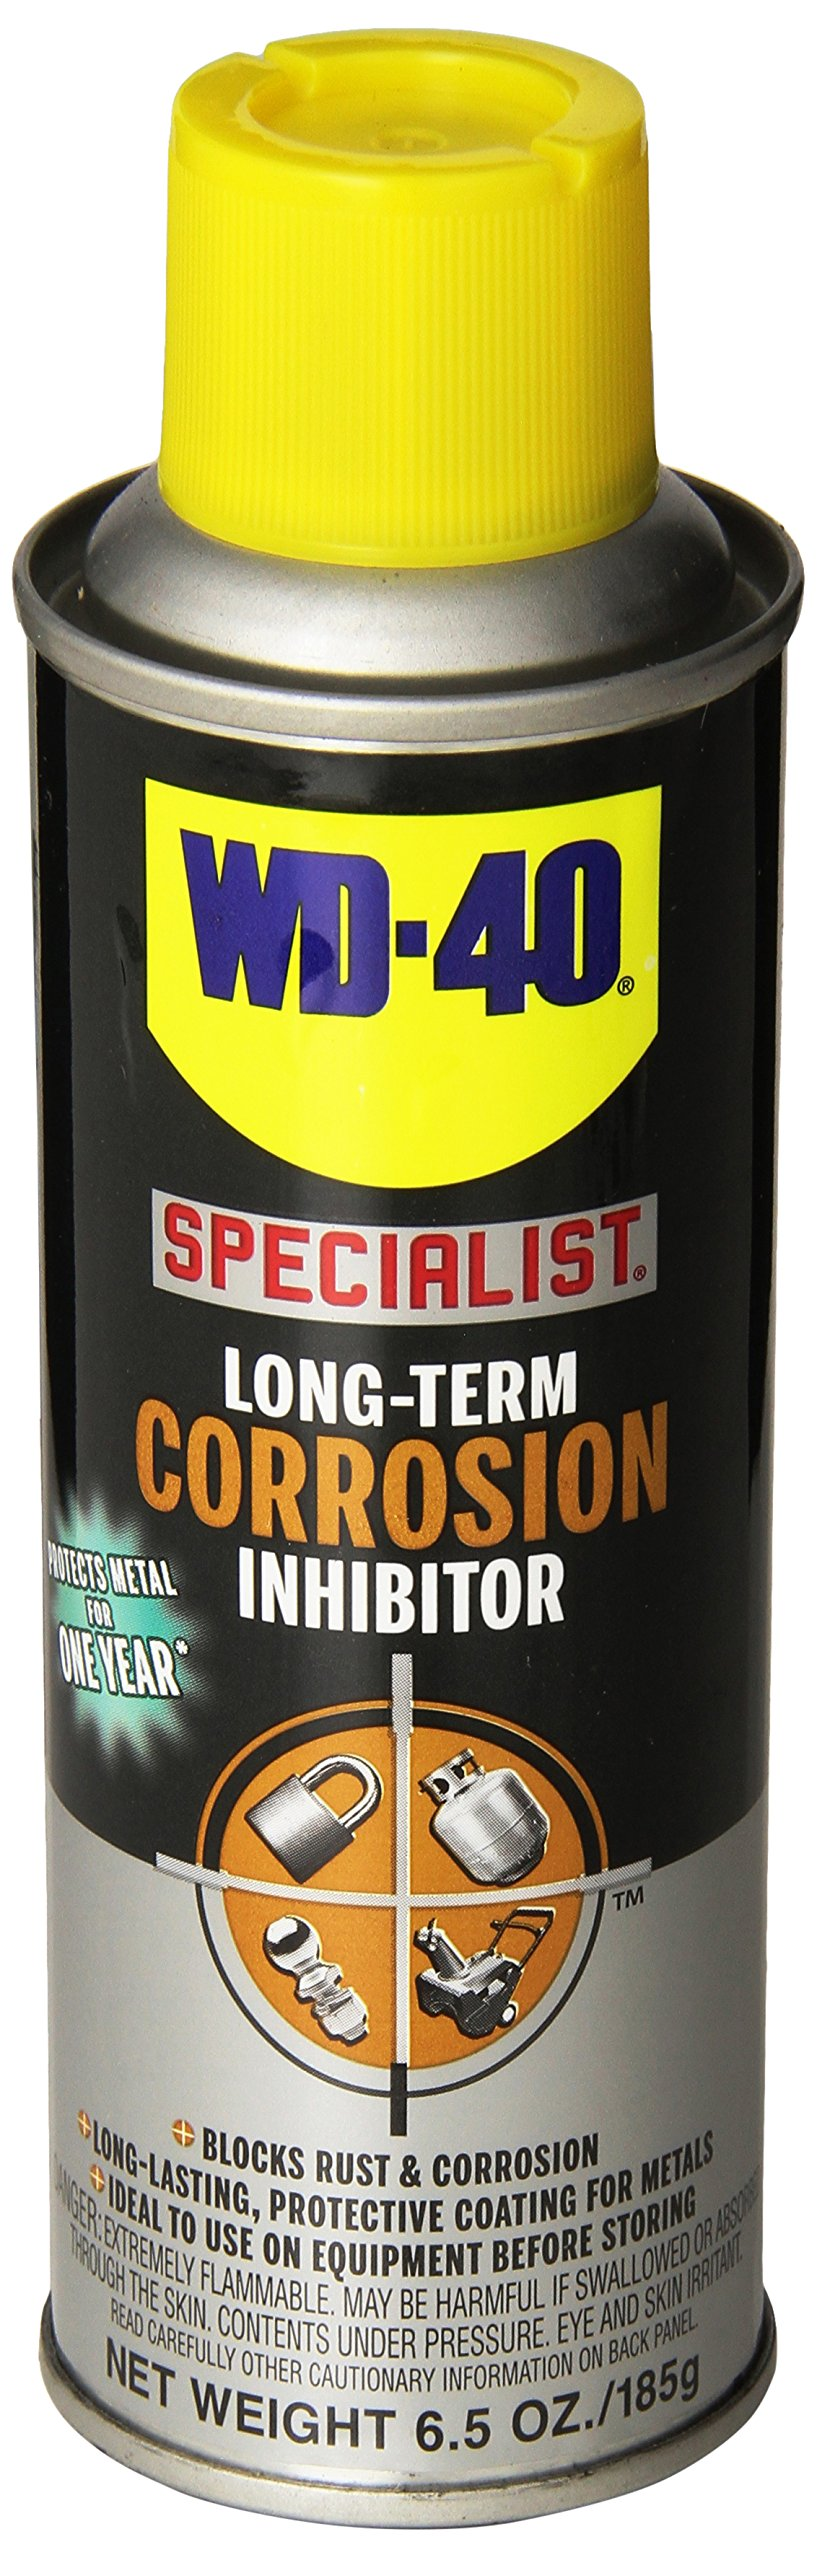 WD-40 Specialist Long-Term Corrosion Inhibitor, 6.5 OZ [6-Pack]